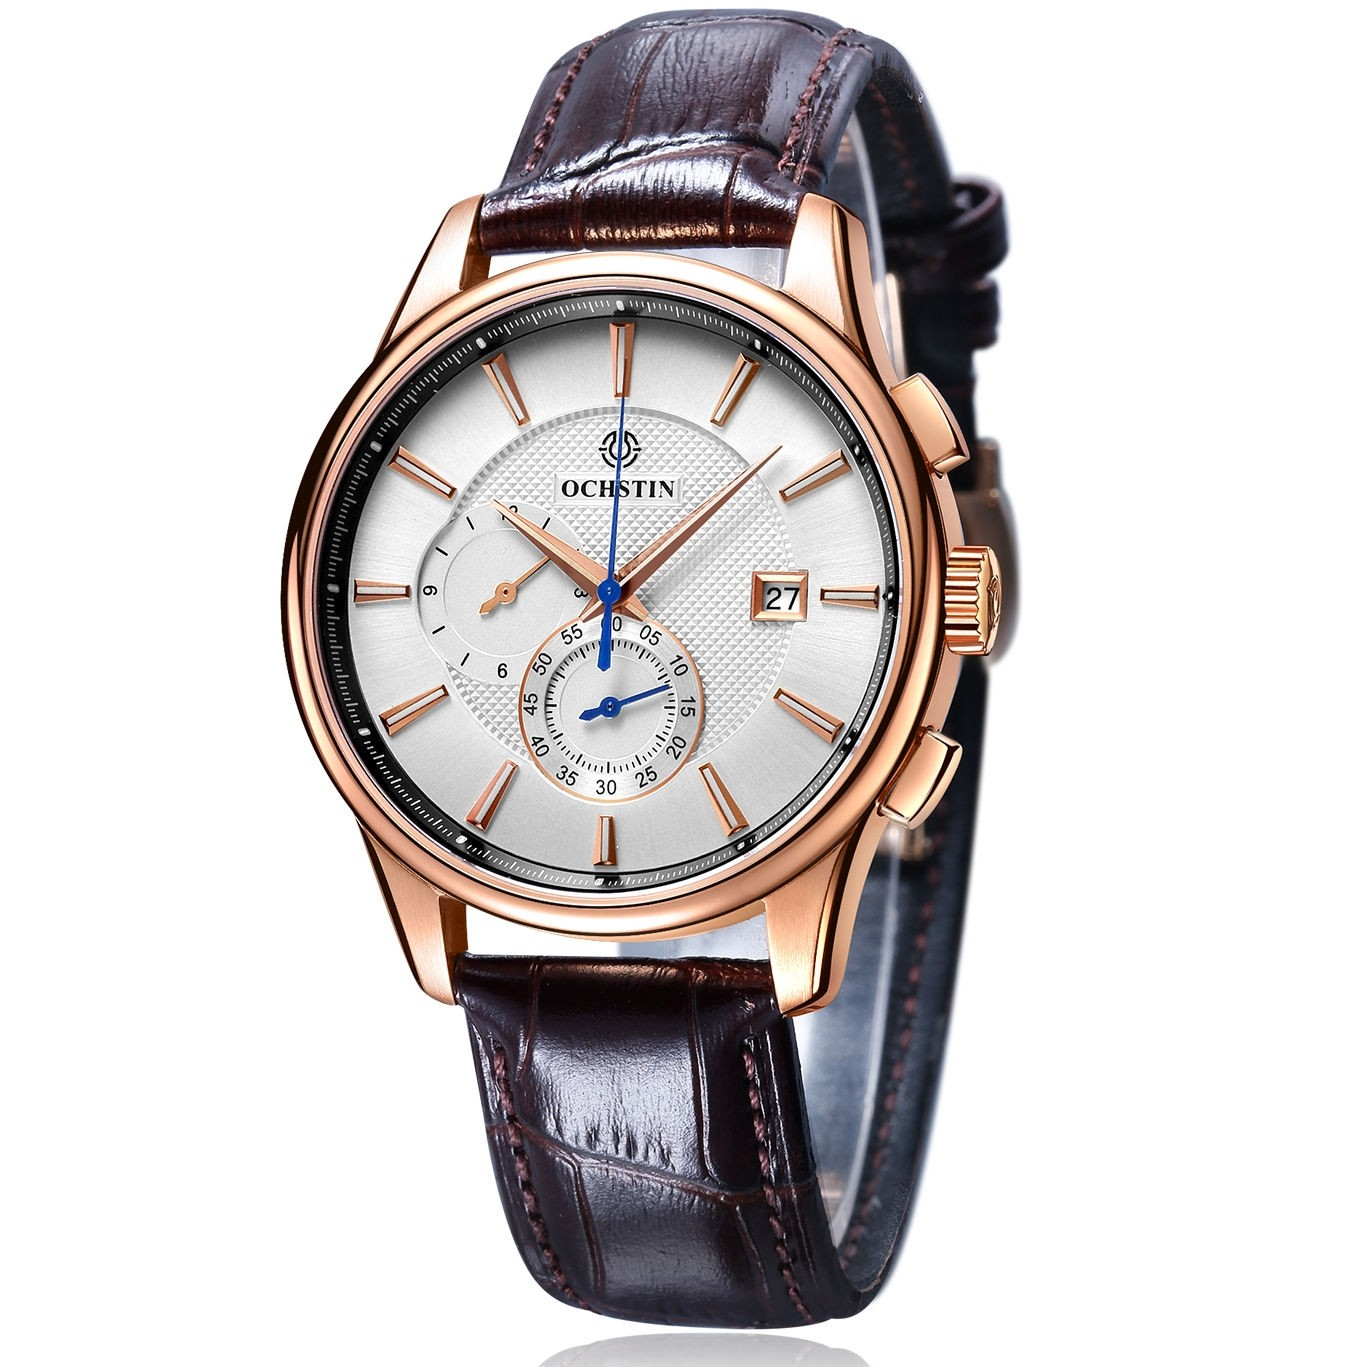 Ochstin chronograph white/gold-312